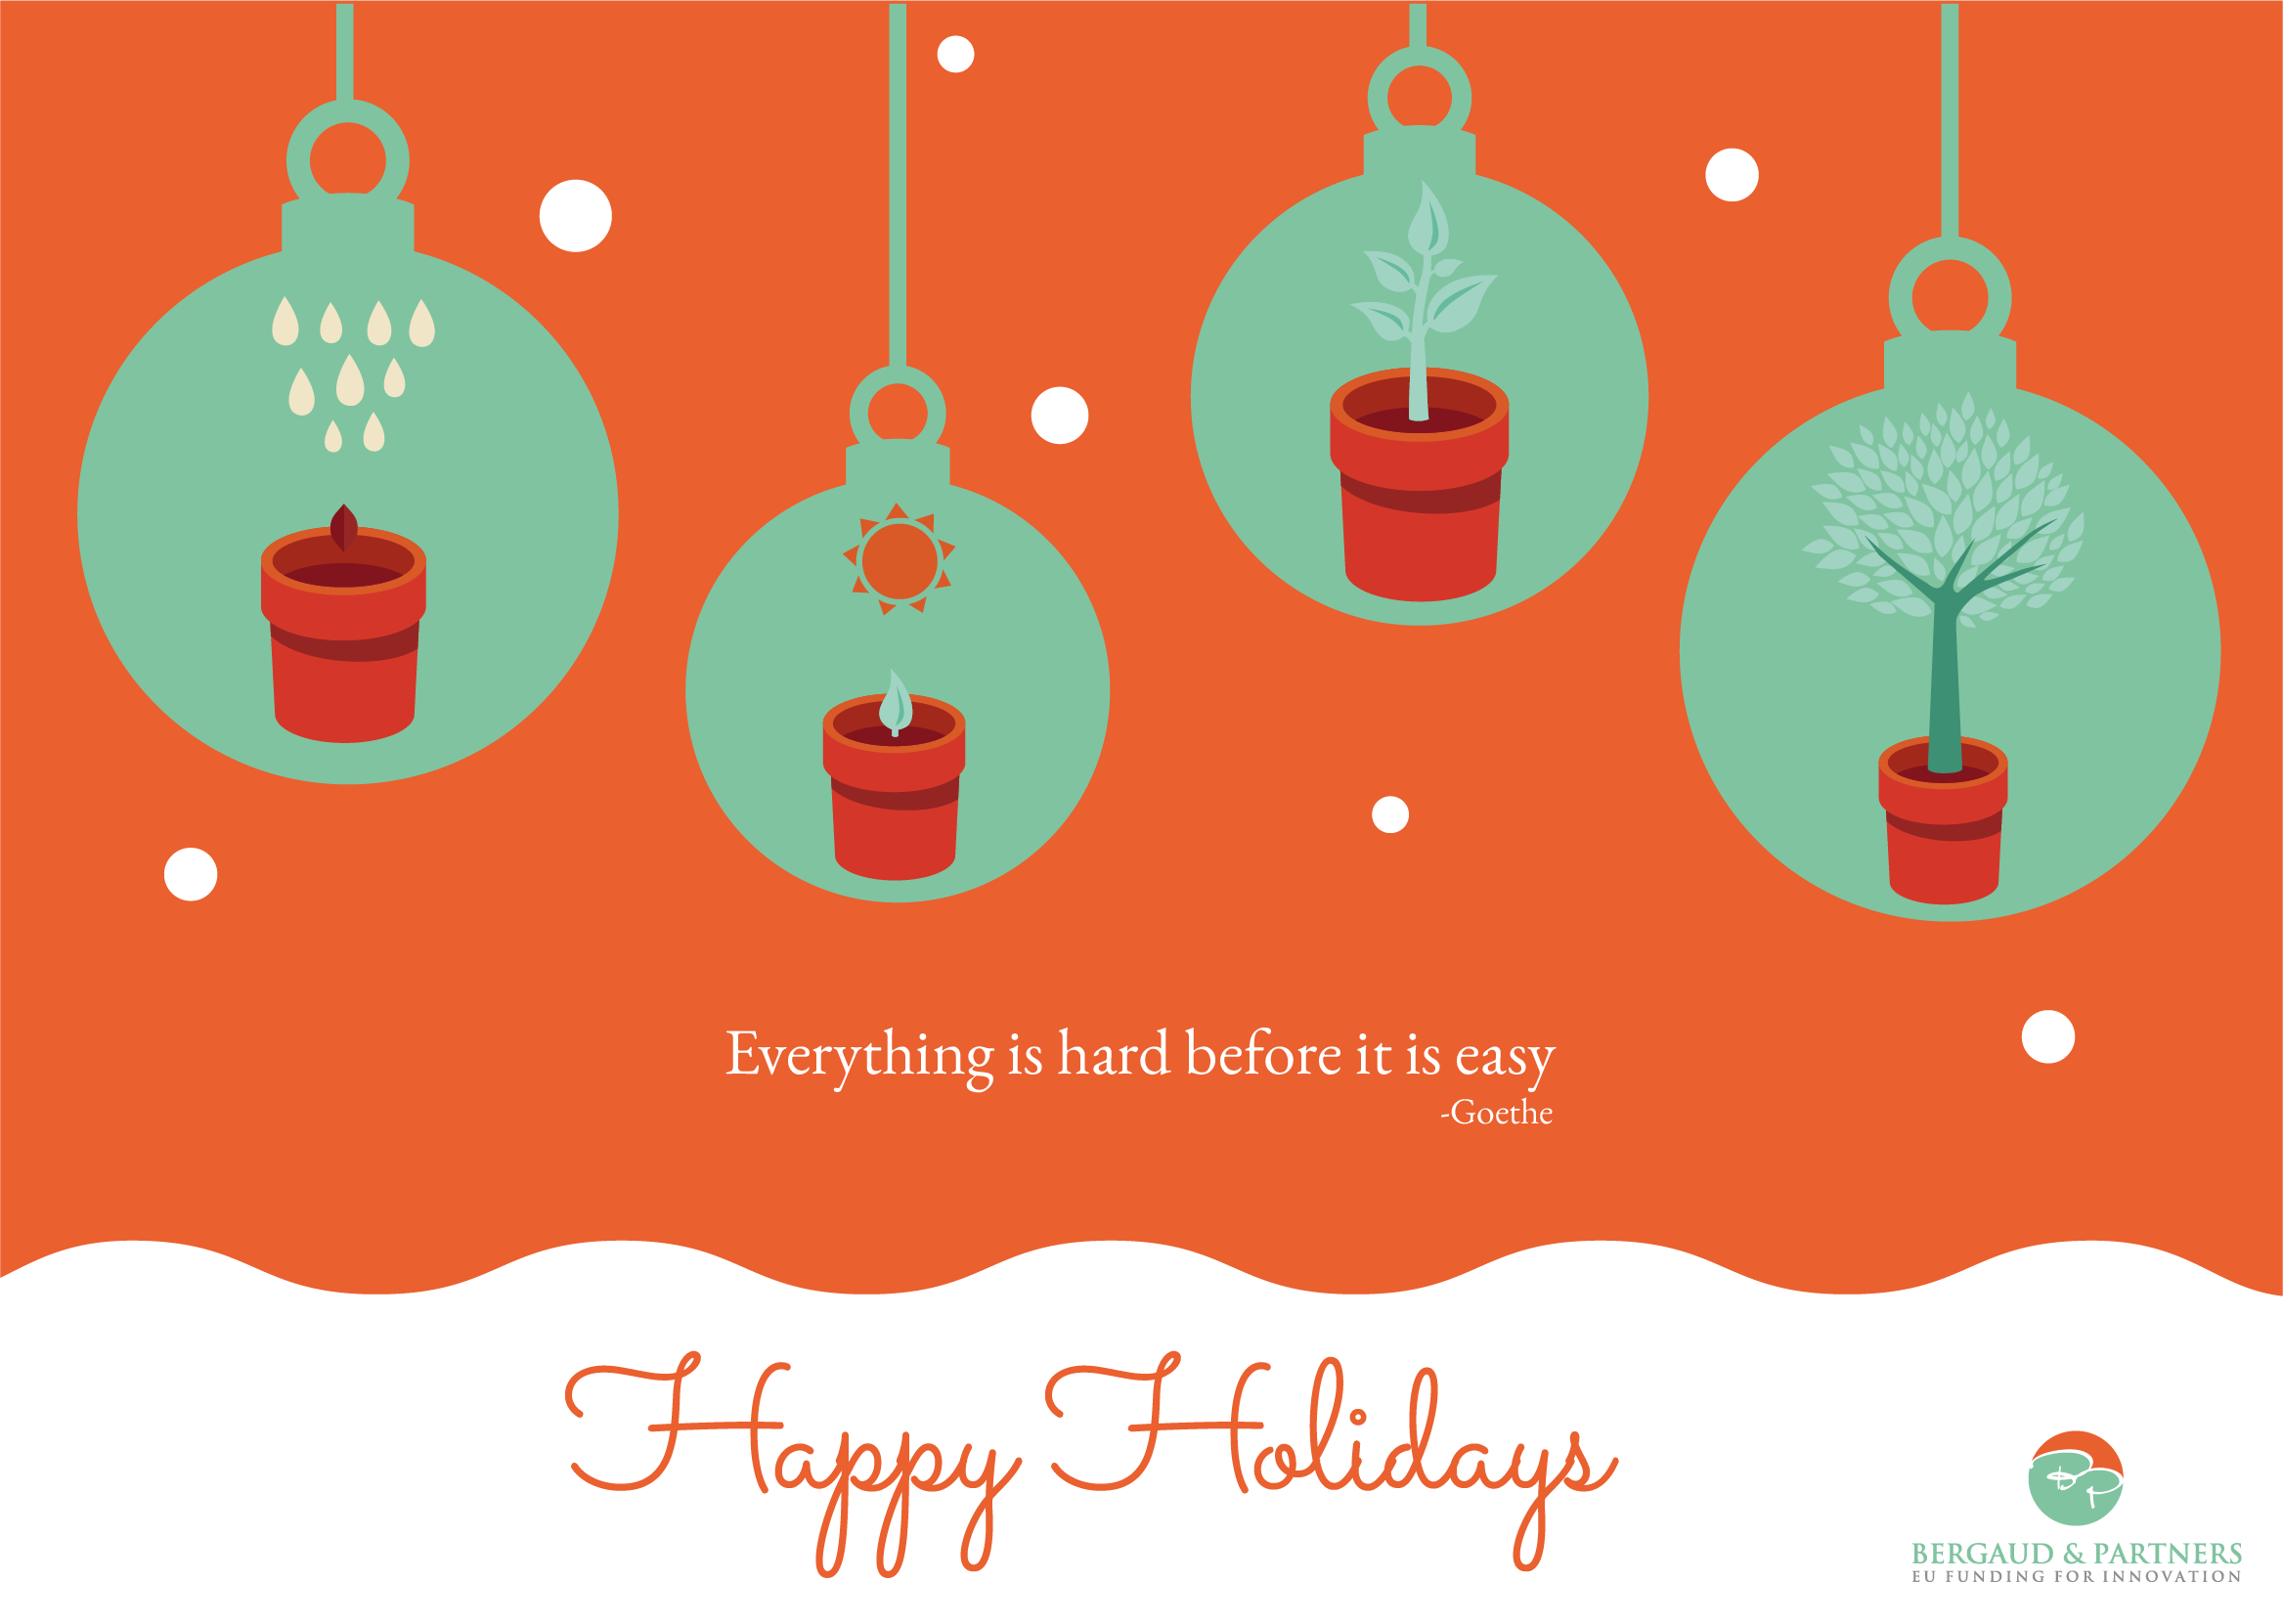 Design of a simple Christmas card